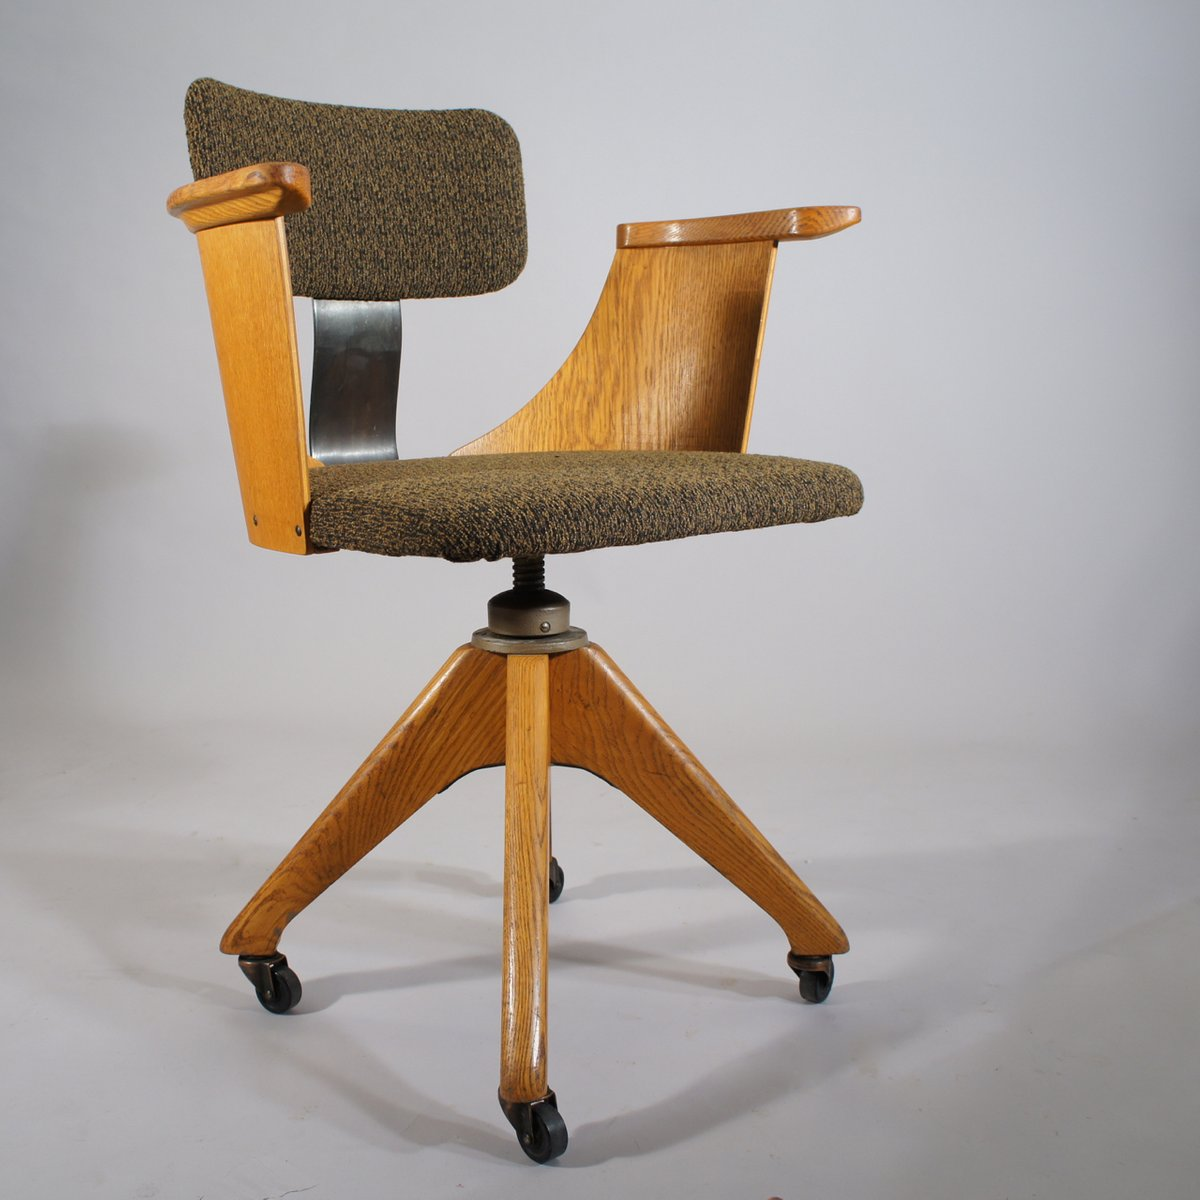 Vintage Height Adjustable Office Chair For Sale At Pamono